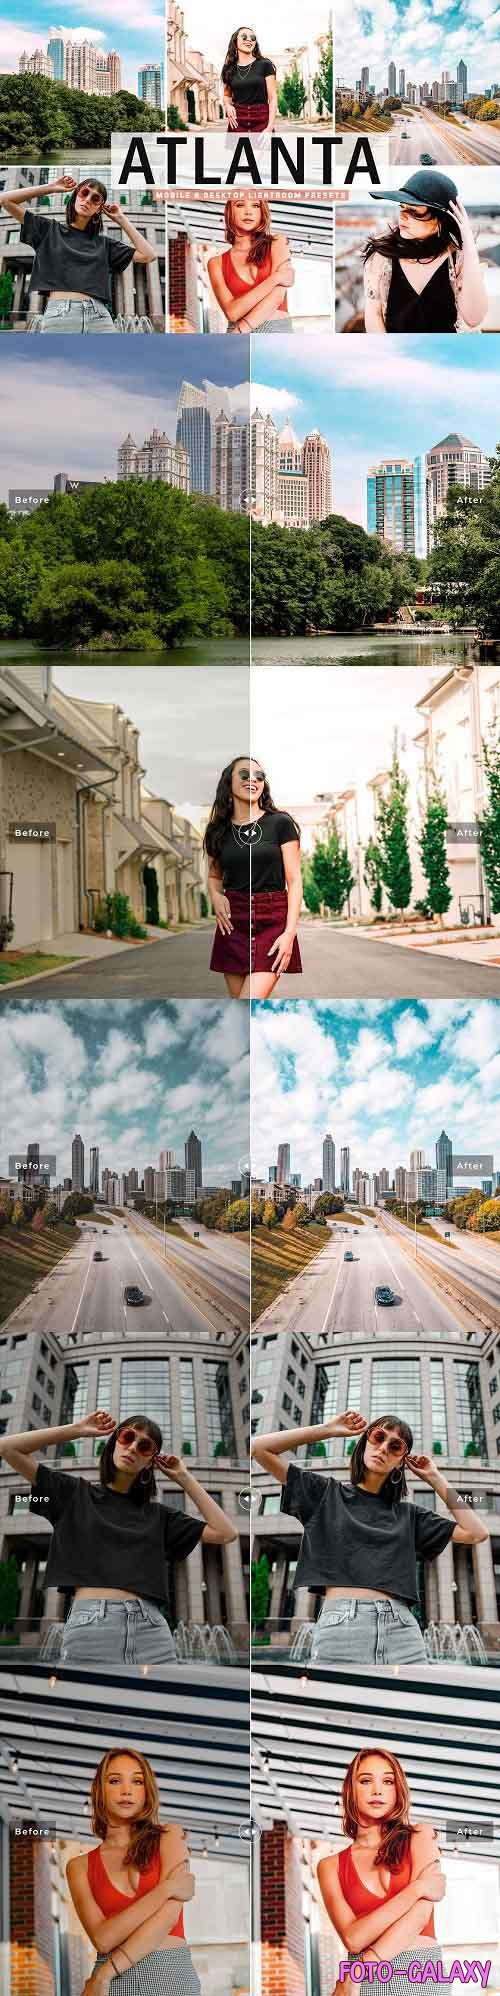 Atlanta Pro Lightroom Presets - 5372395 - Mobile & Desktop